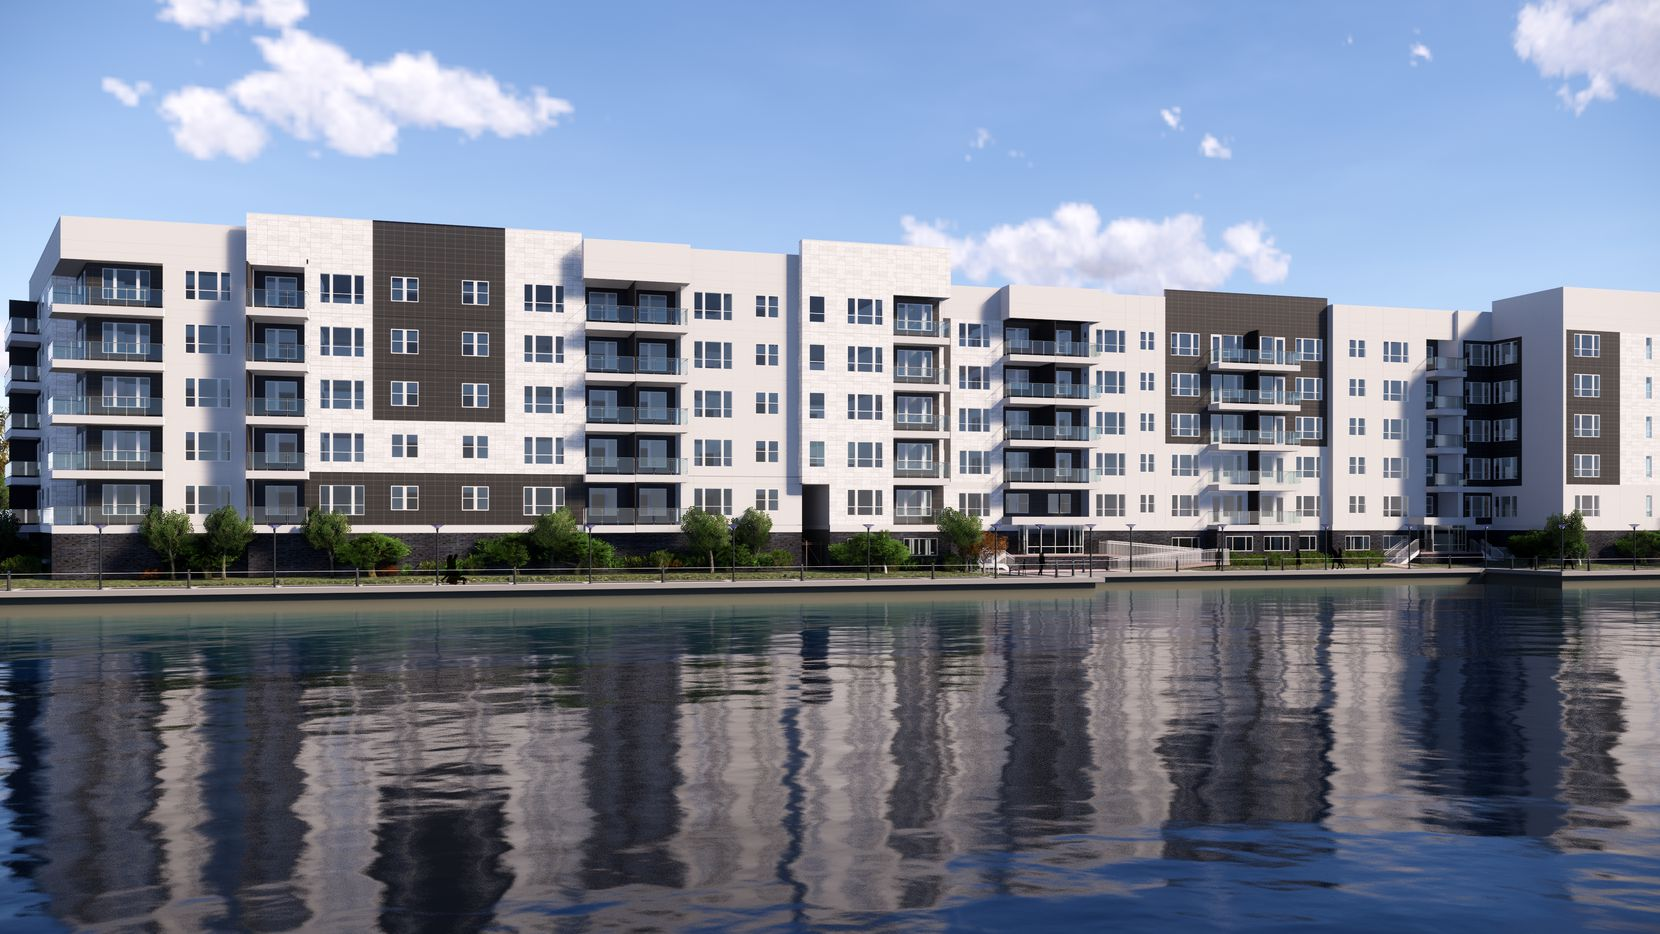 San Francisco-based Legacy Partners will develop an almost 300-unit rental community on Lake Carolyn.